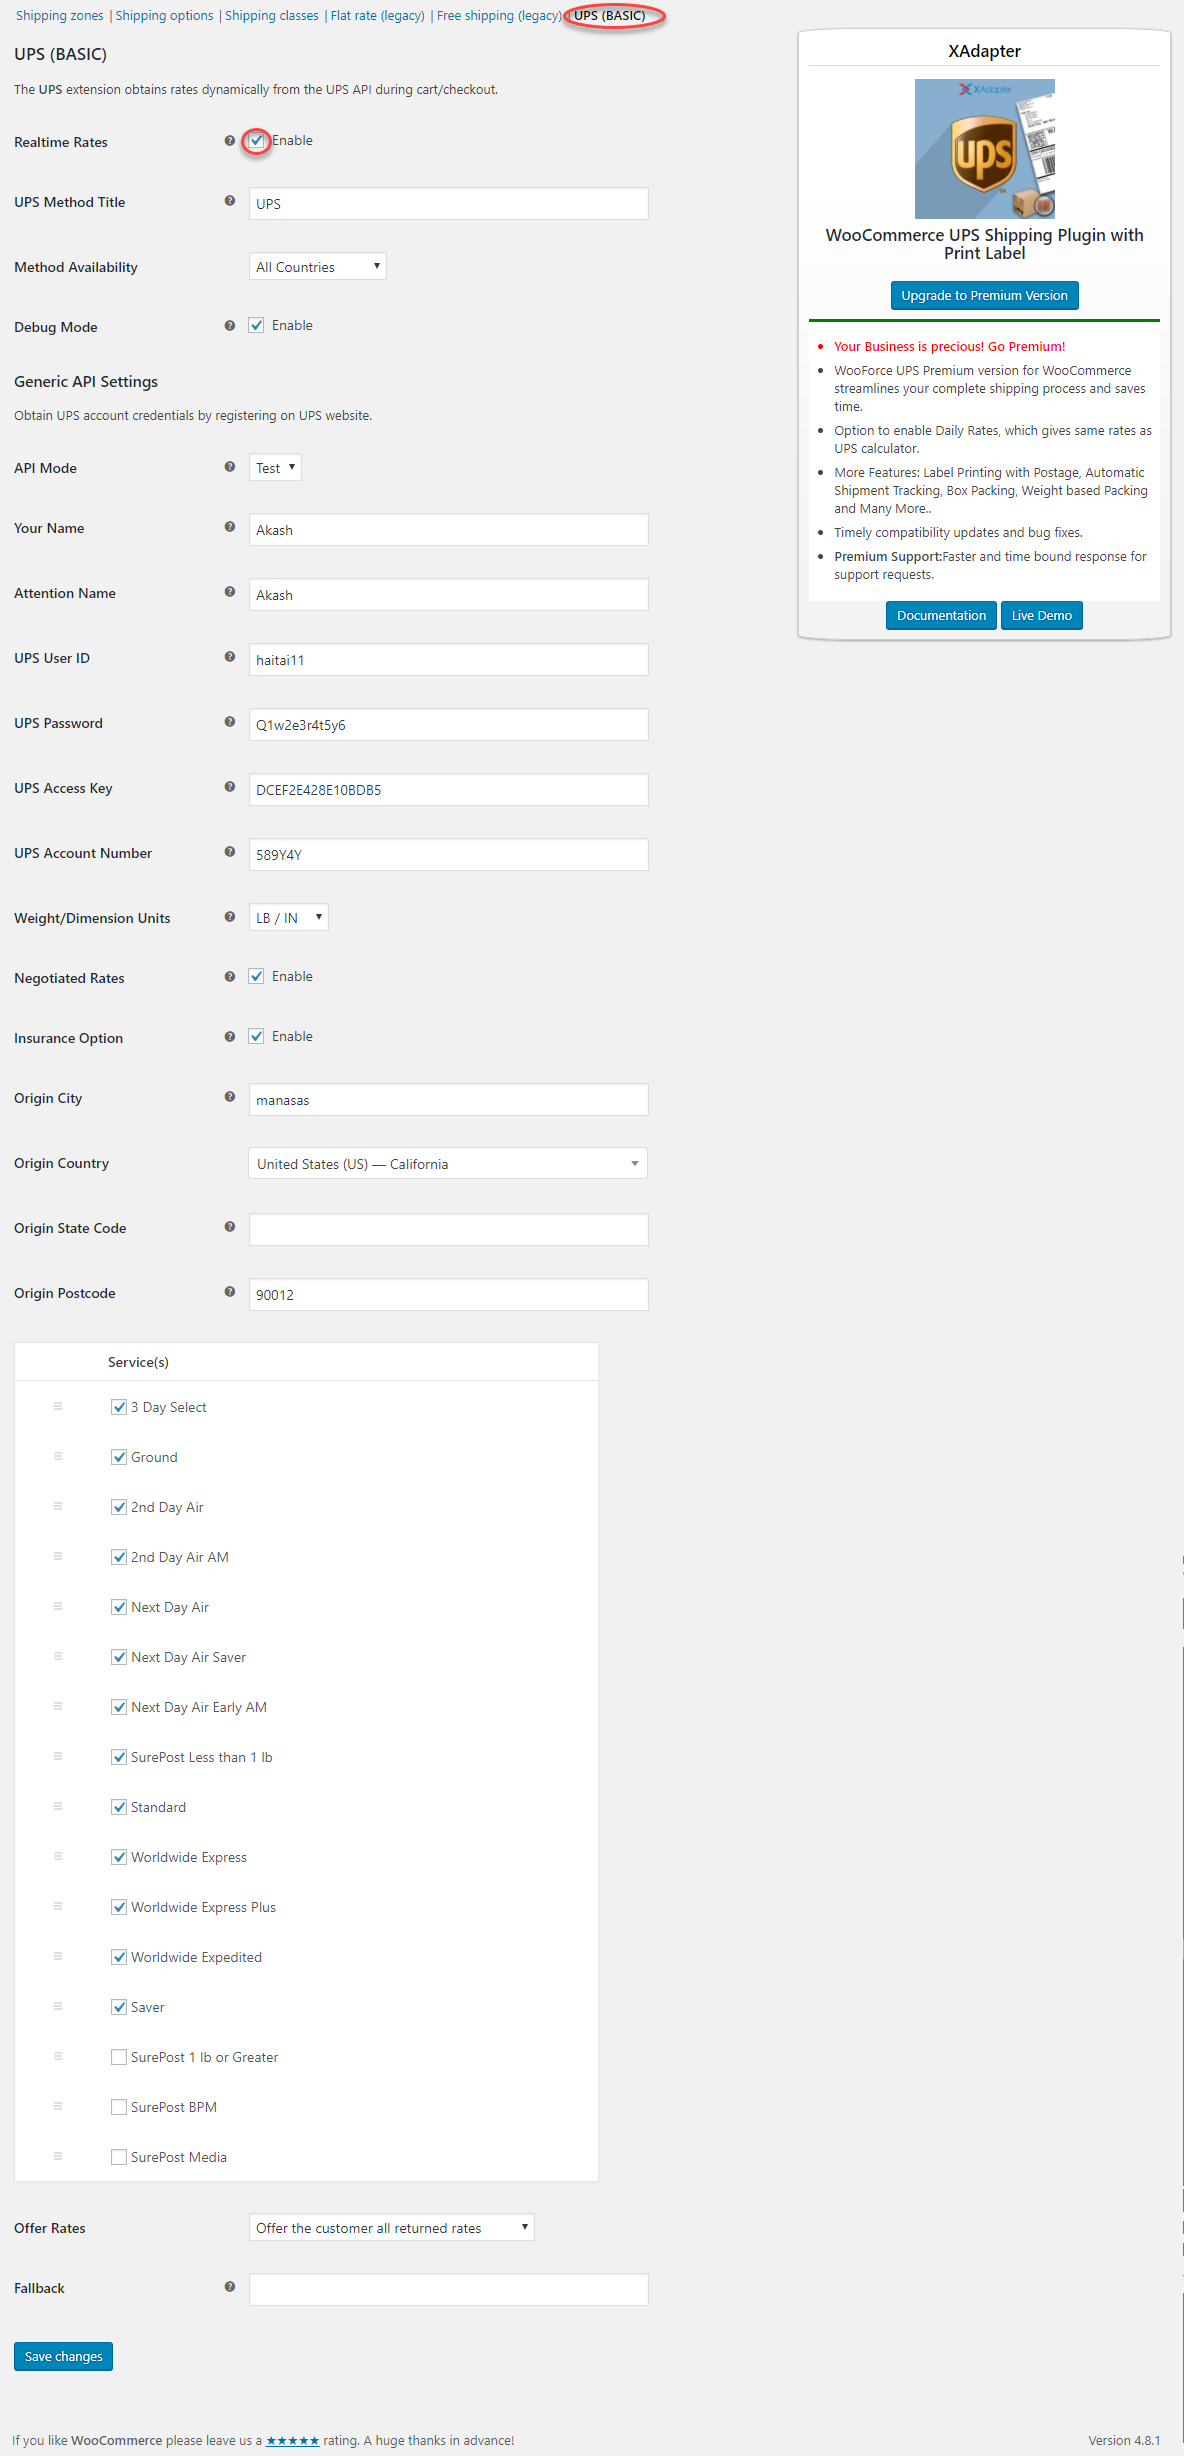 The settings page has options that determine how UPS rates are displayed on your site's frontend